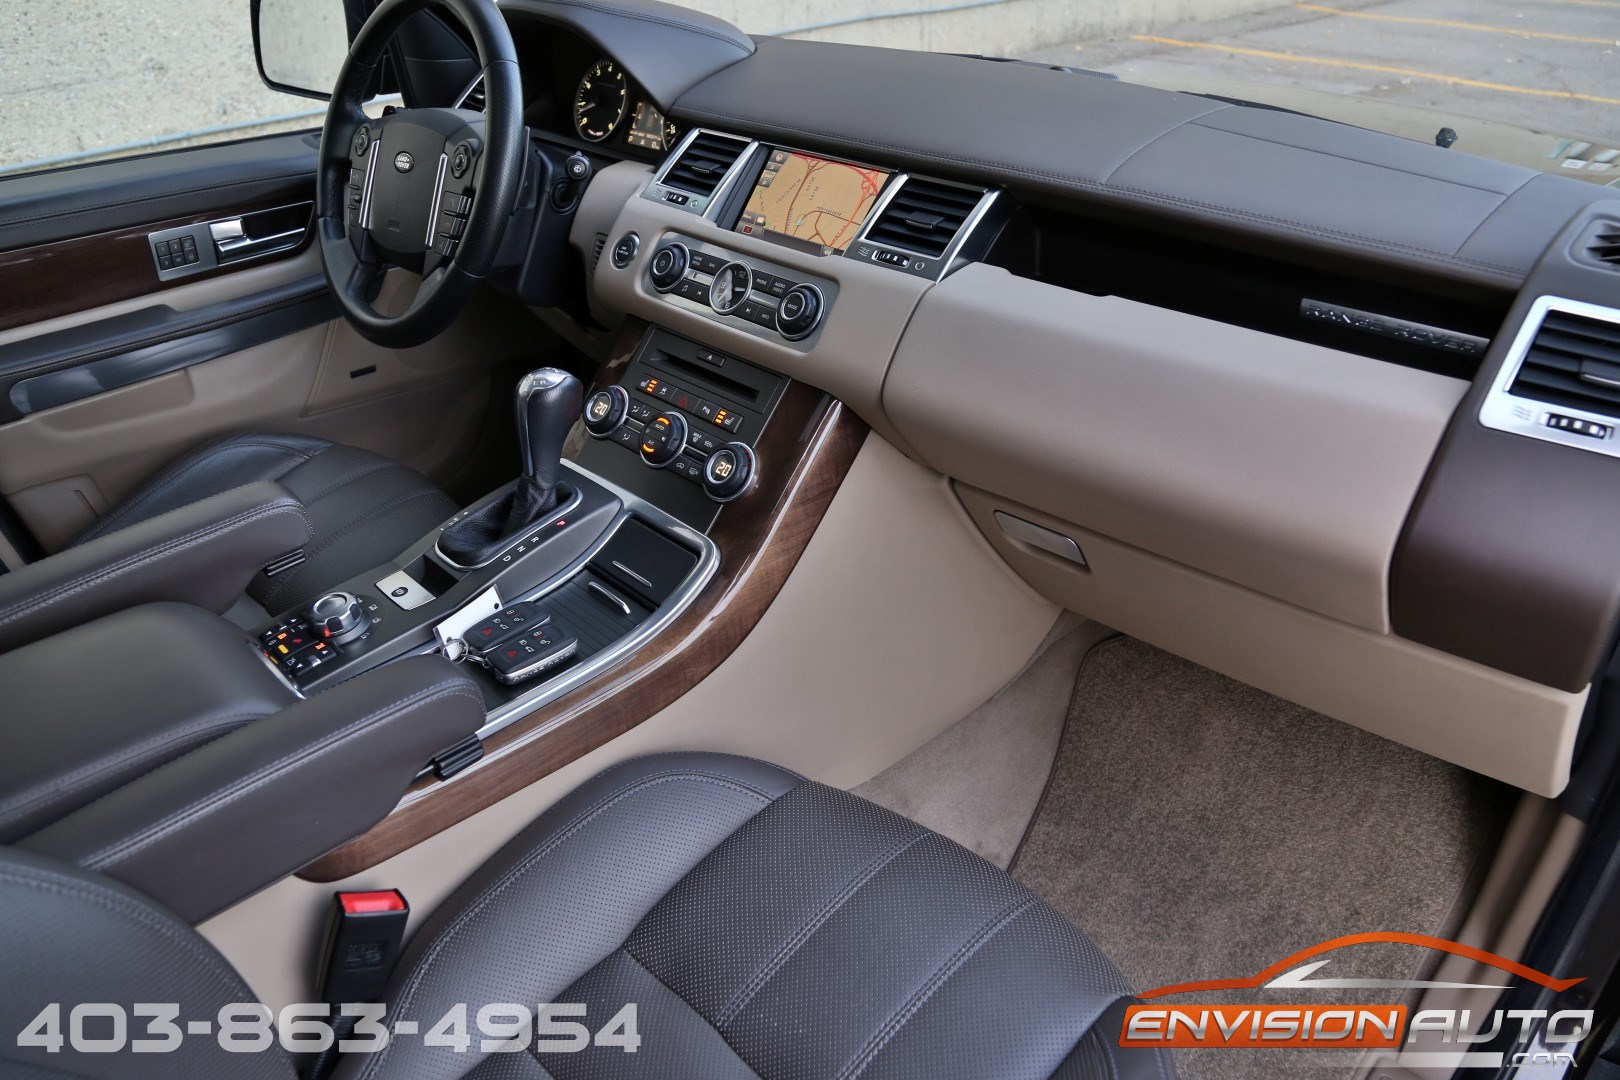 kit vehicles living extension qatar autobiography range rover dealer extended sport landrover warranty land supercharged